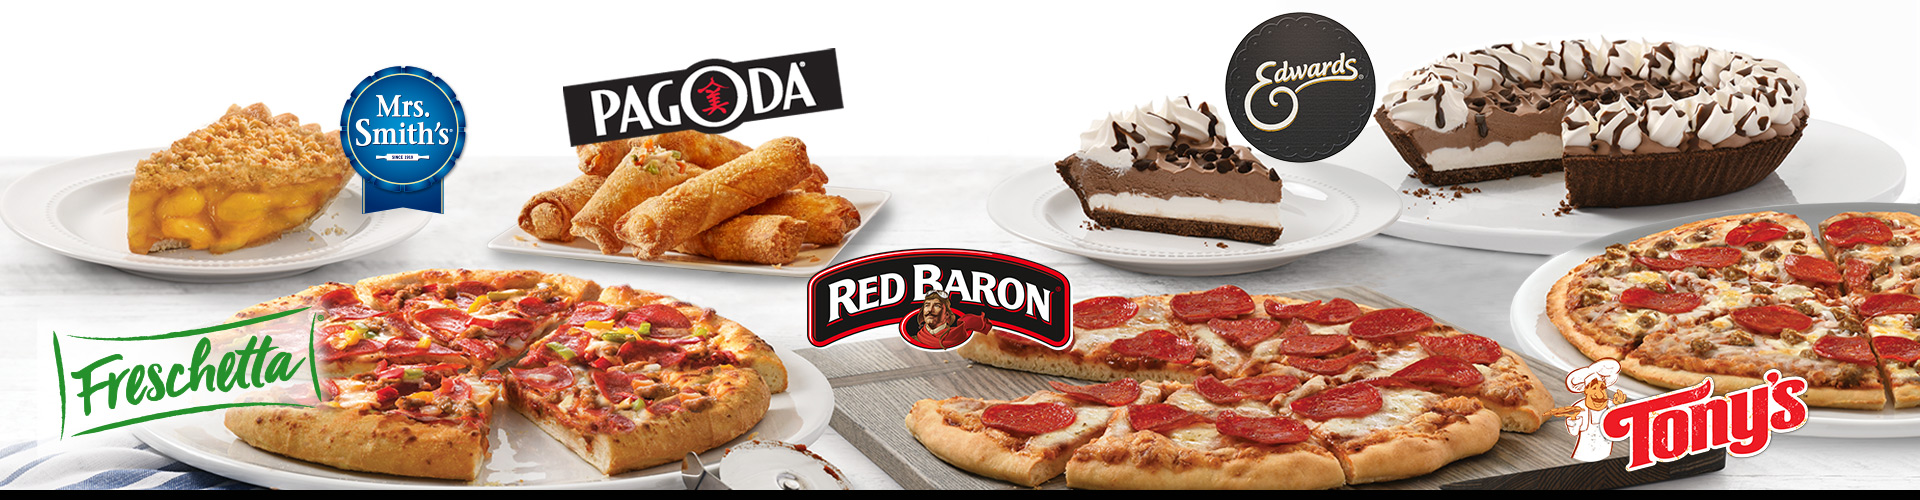 Spread of Pies, Pizzas and Egg Rolls from RED BARON®, FRESCHETTA®, TONY'S®, PAGODA®, EDWARDS® and MRS. SMITH'S®